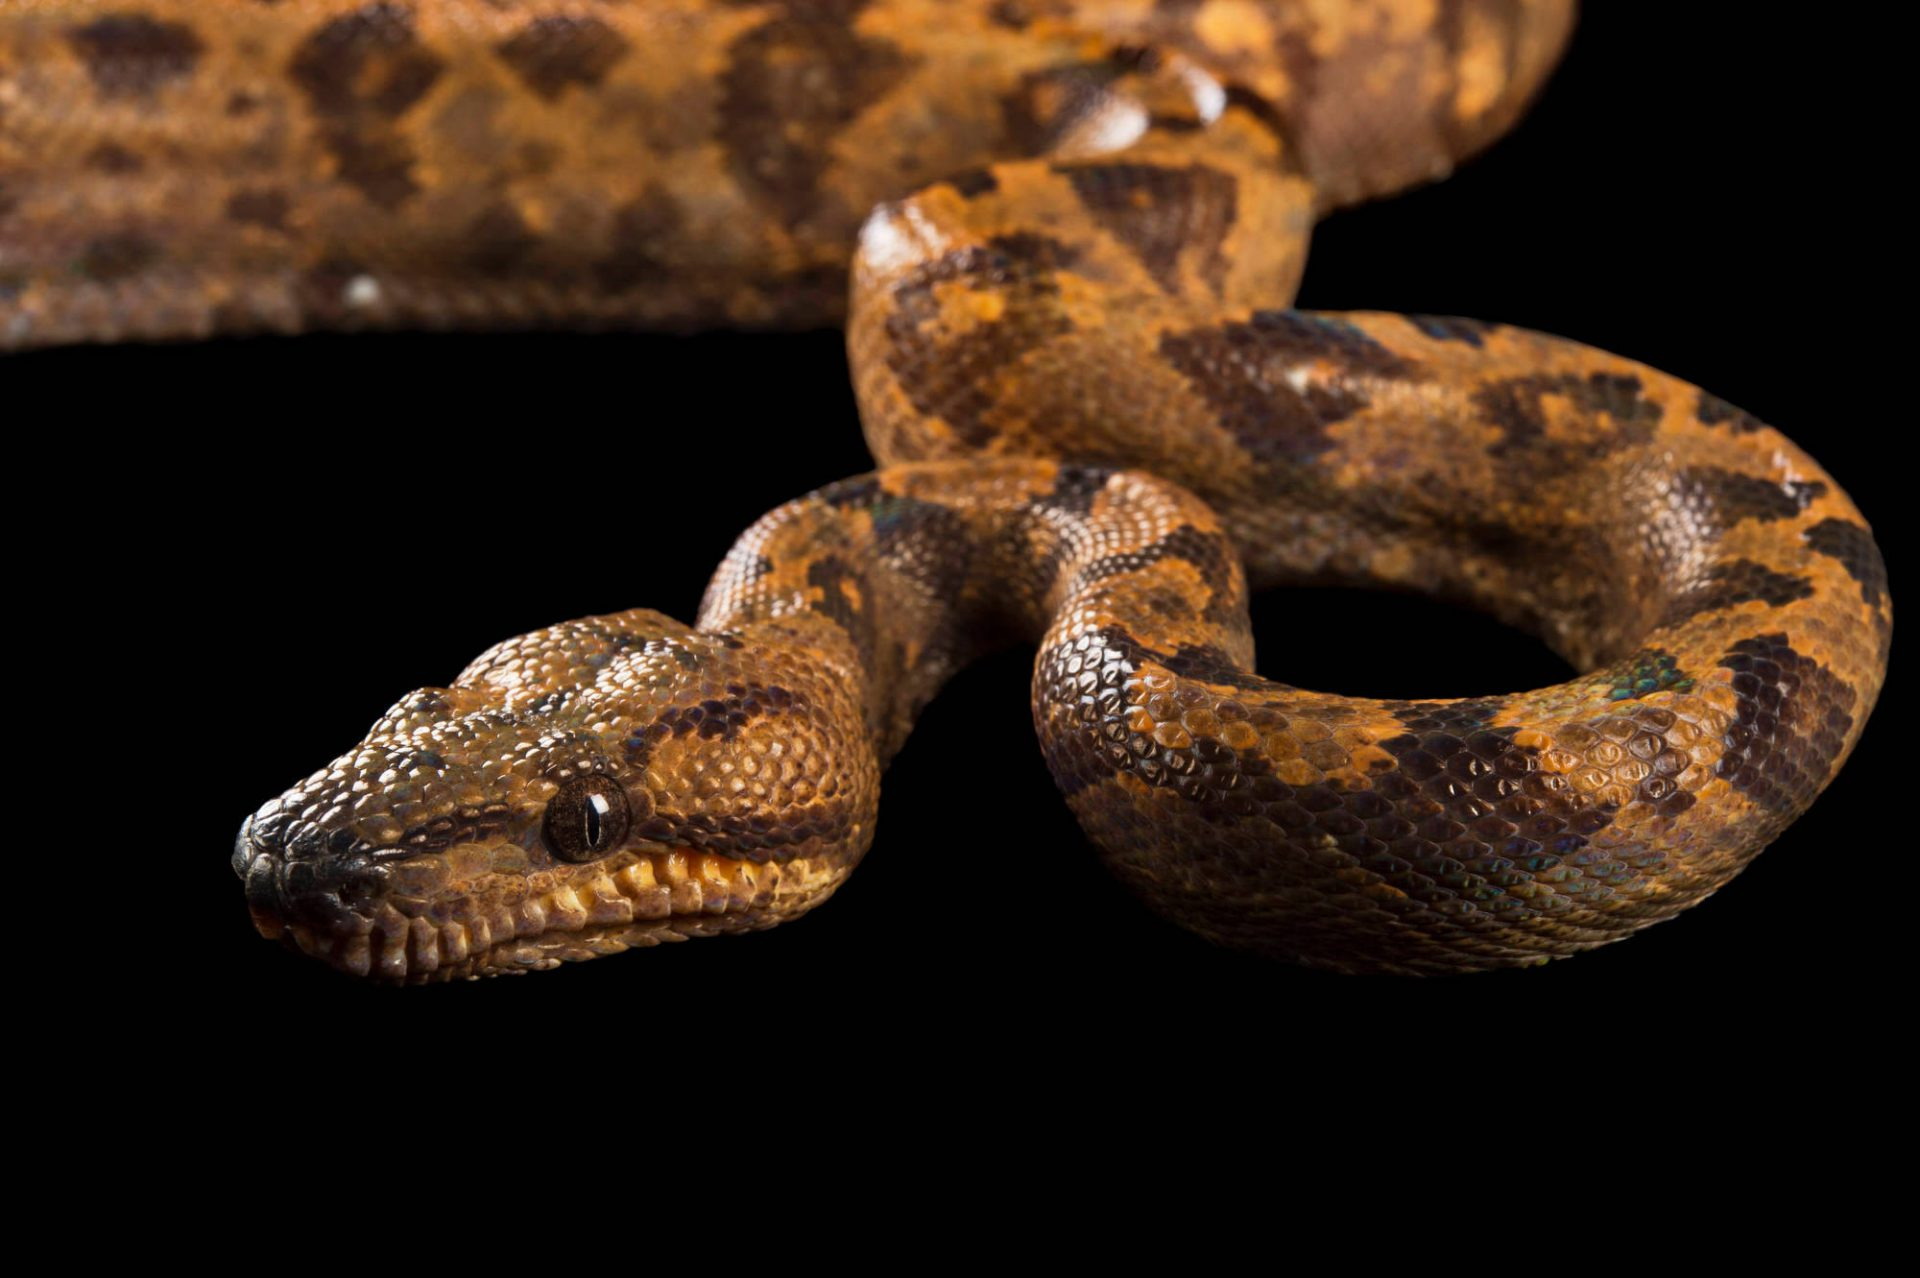 An annulated boa (Corallus blombergi) at the Knoxville Zoo.